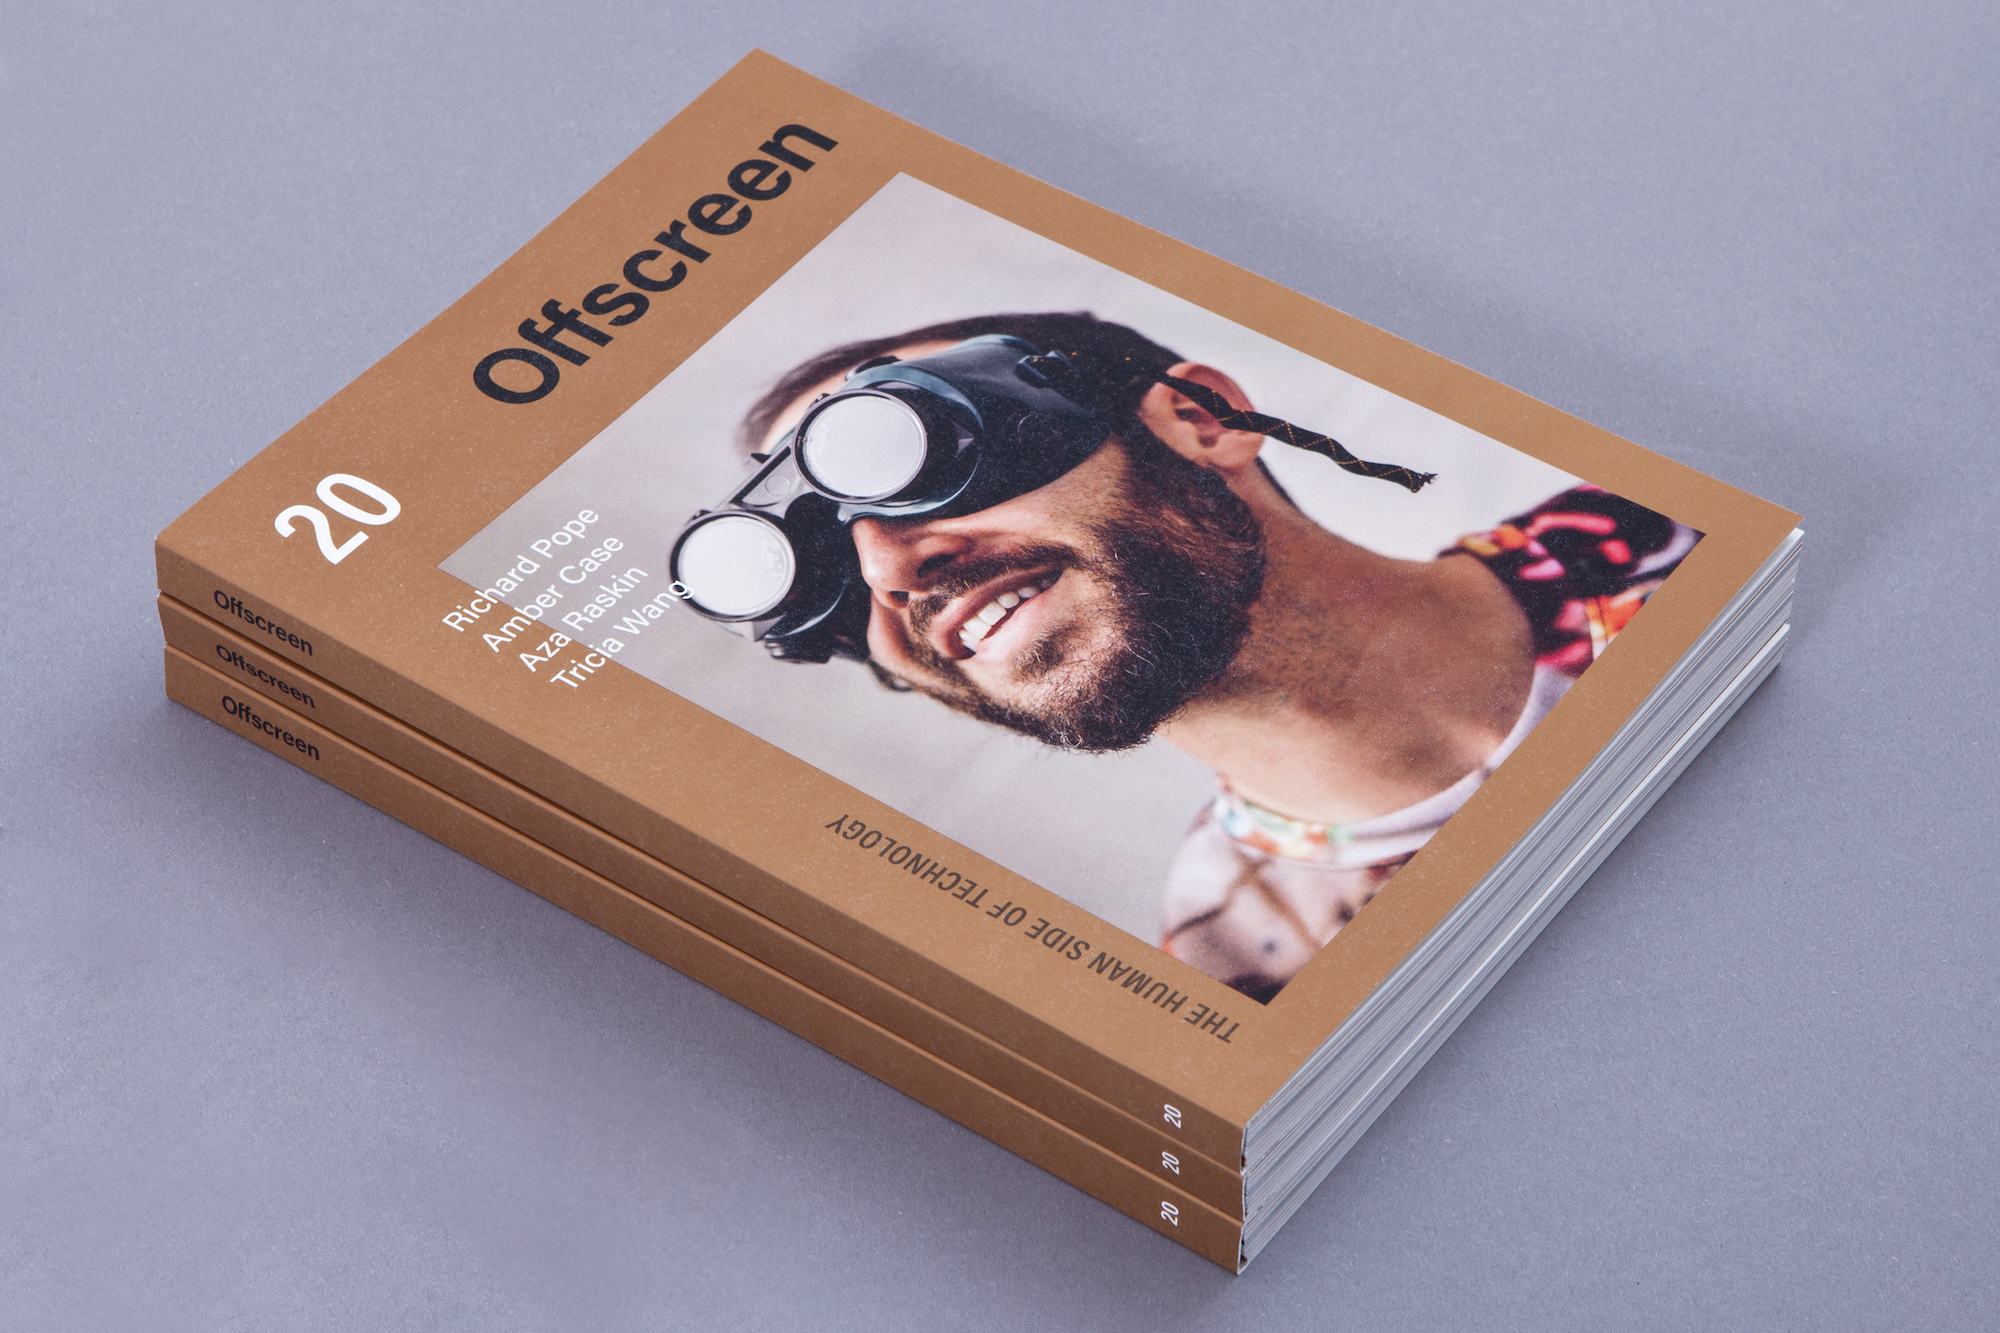 Issue #20 of Offscreen Magazine